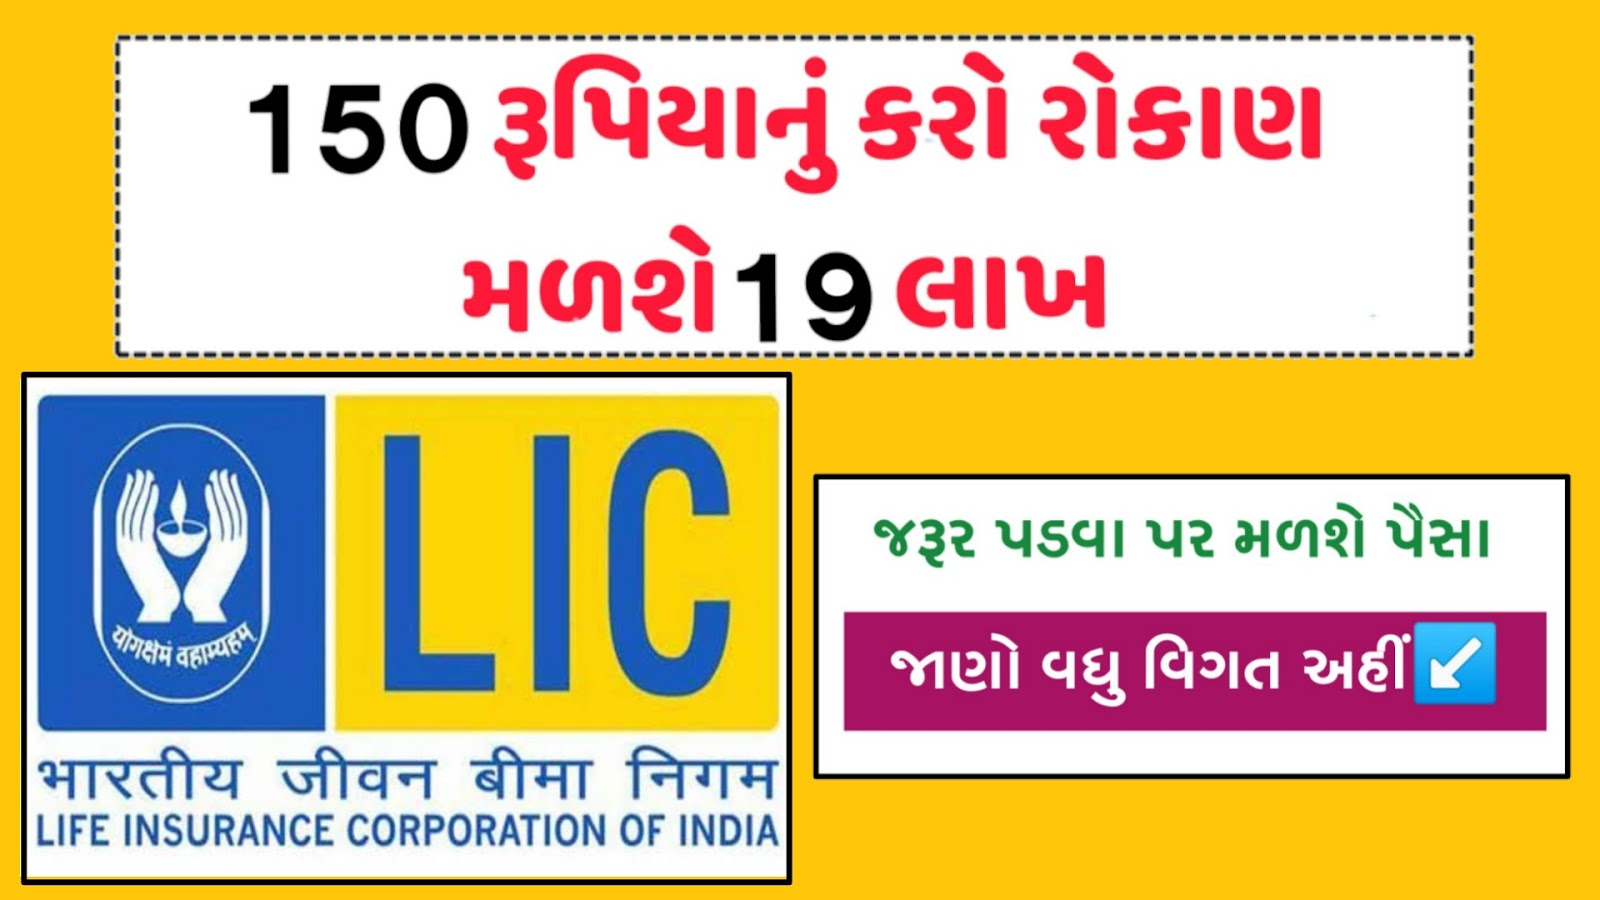 LIC Investment Rs 150 Will Get 19 Lakh Gujarati News